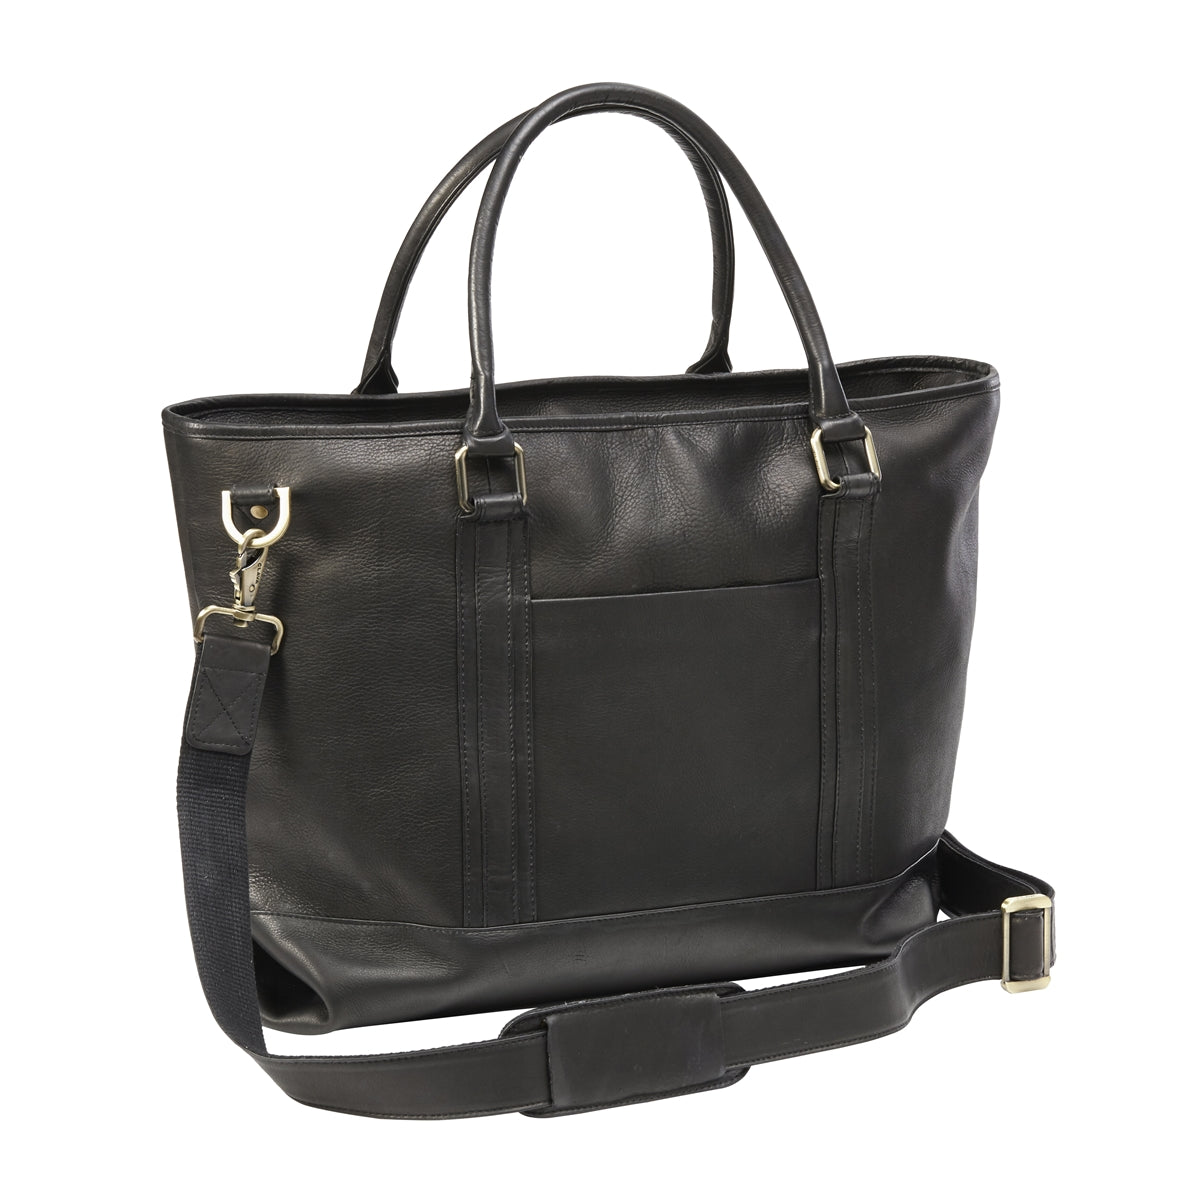 Roadster Travel Tote